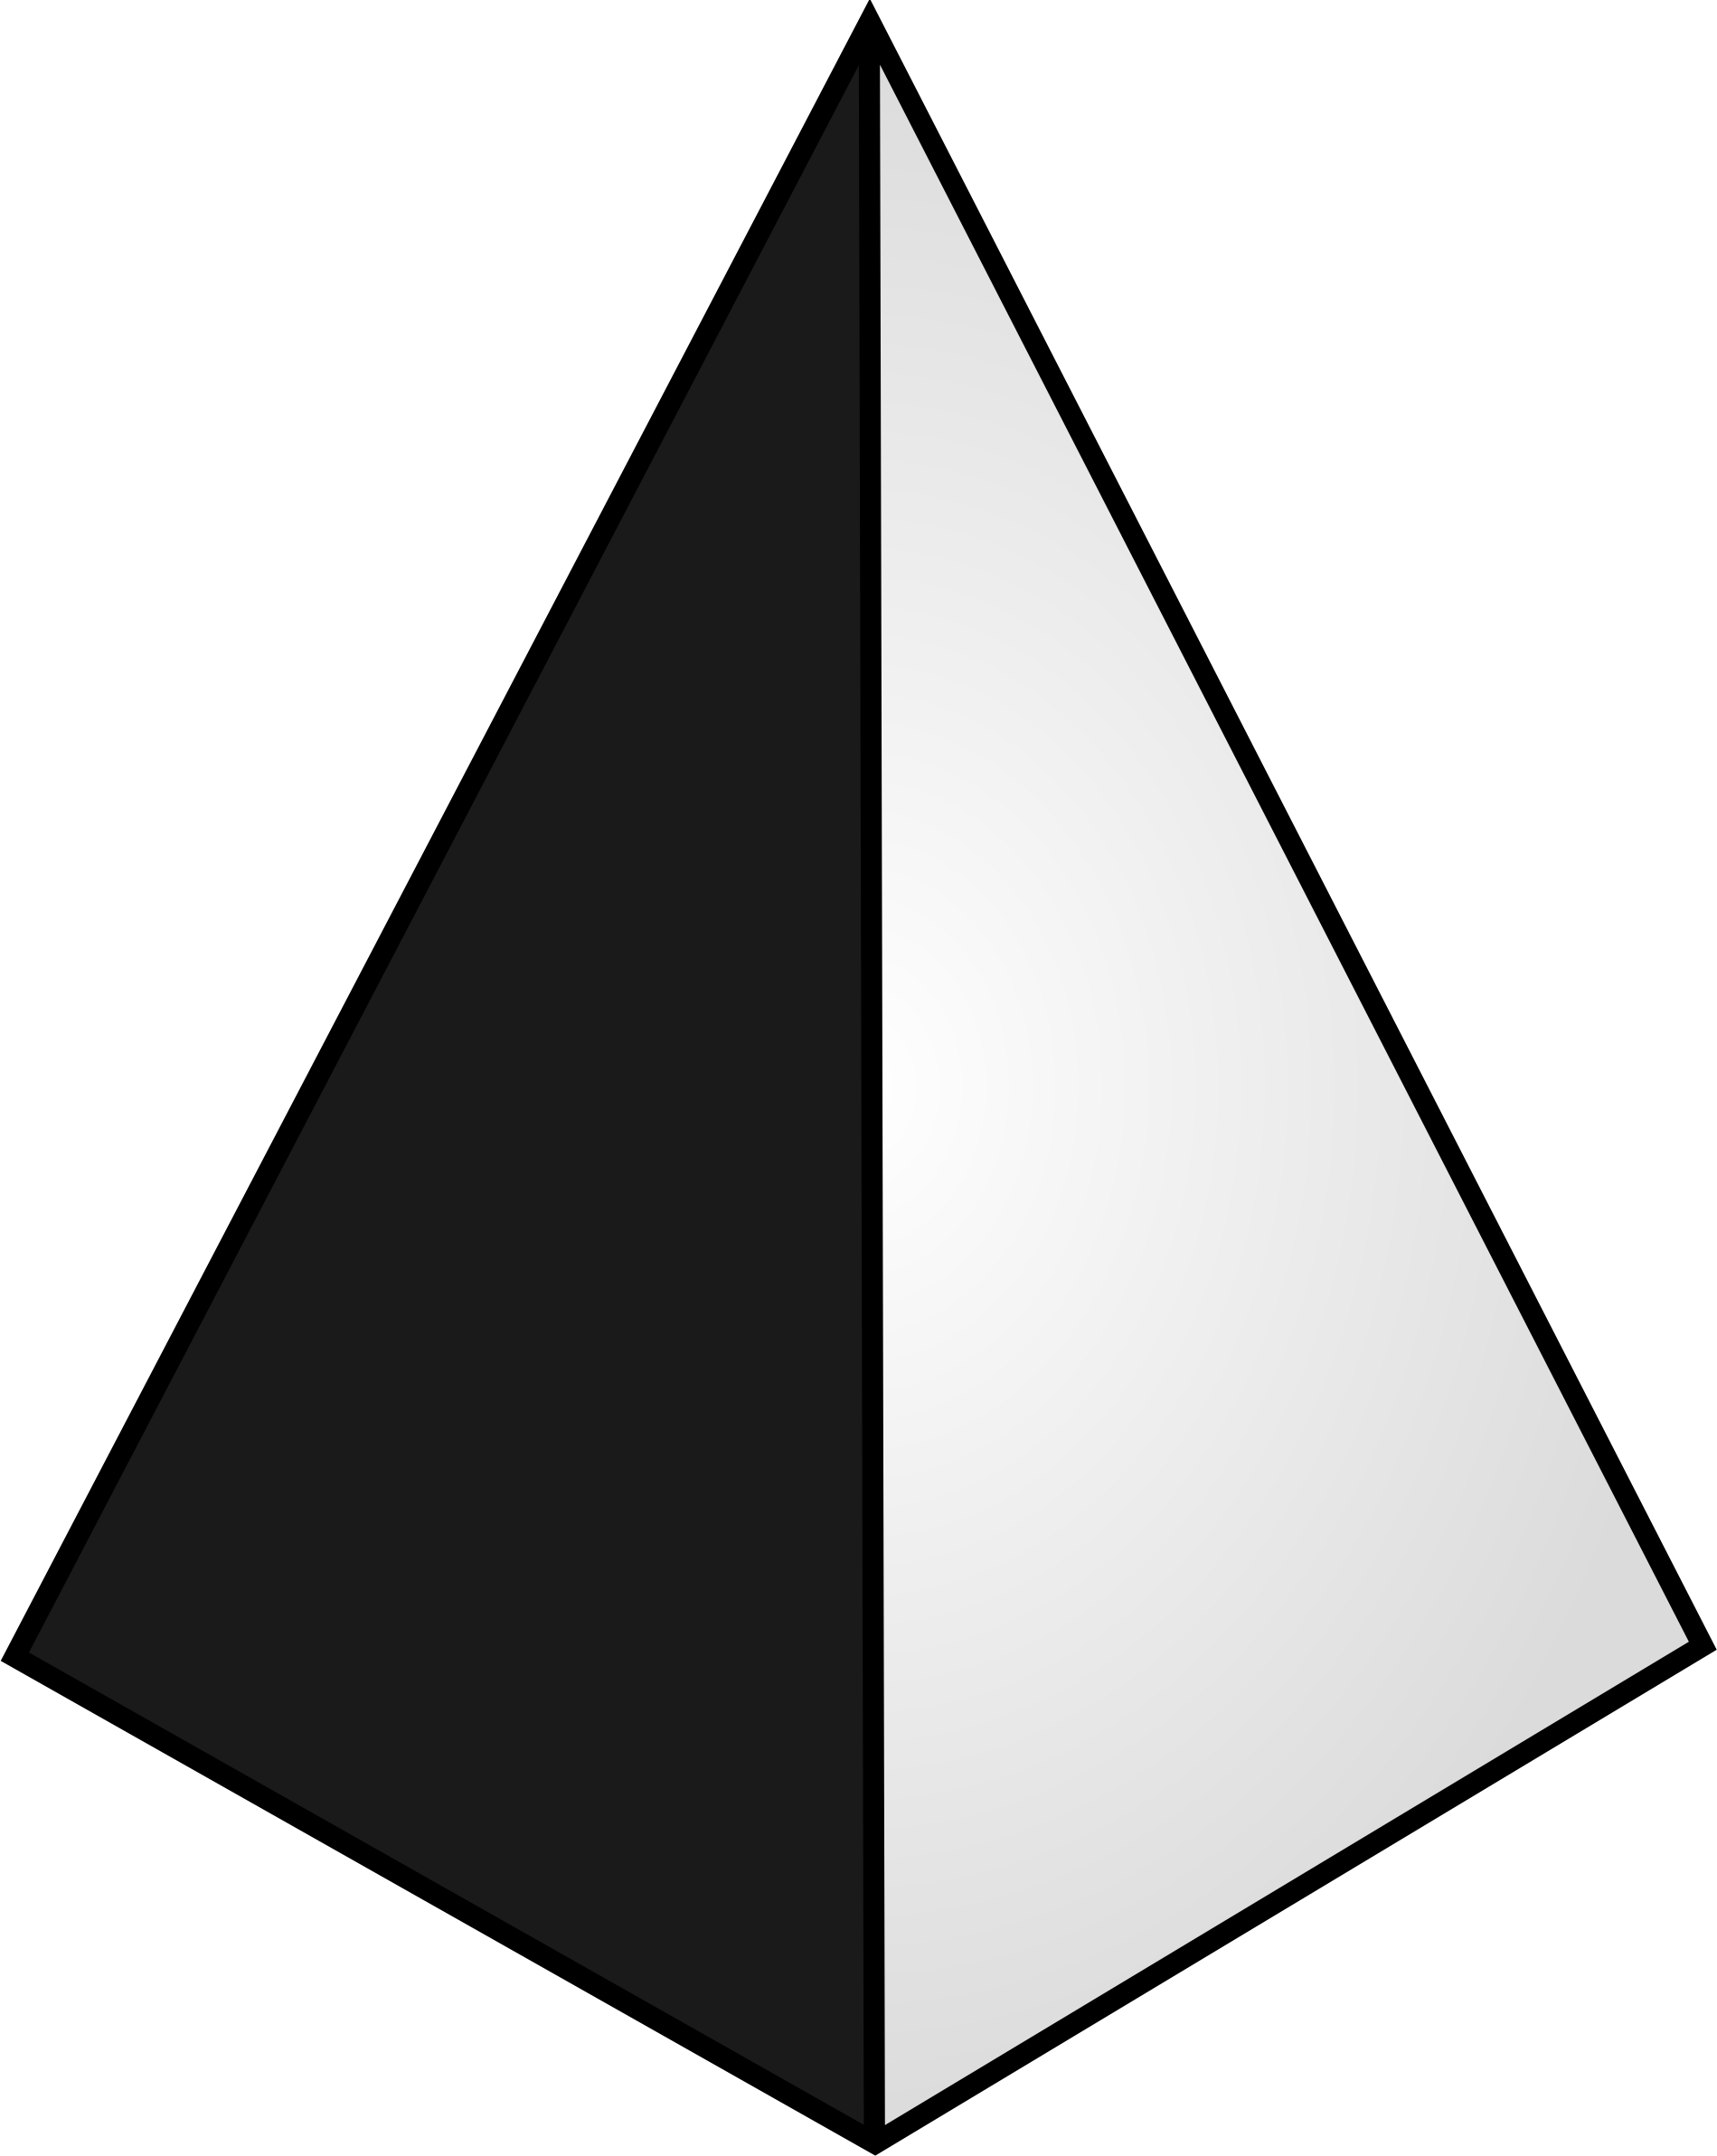 Pyramid Picture PNG Image